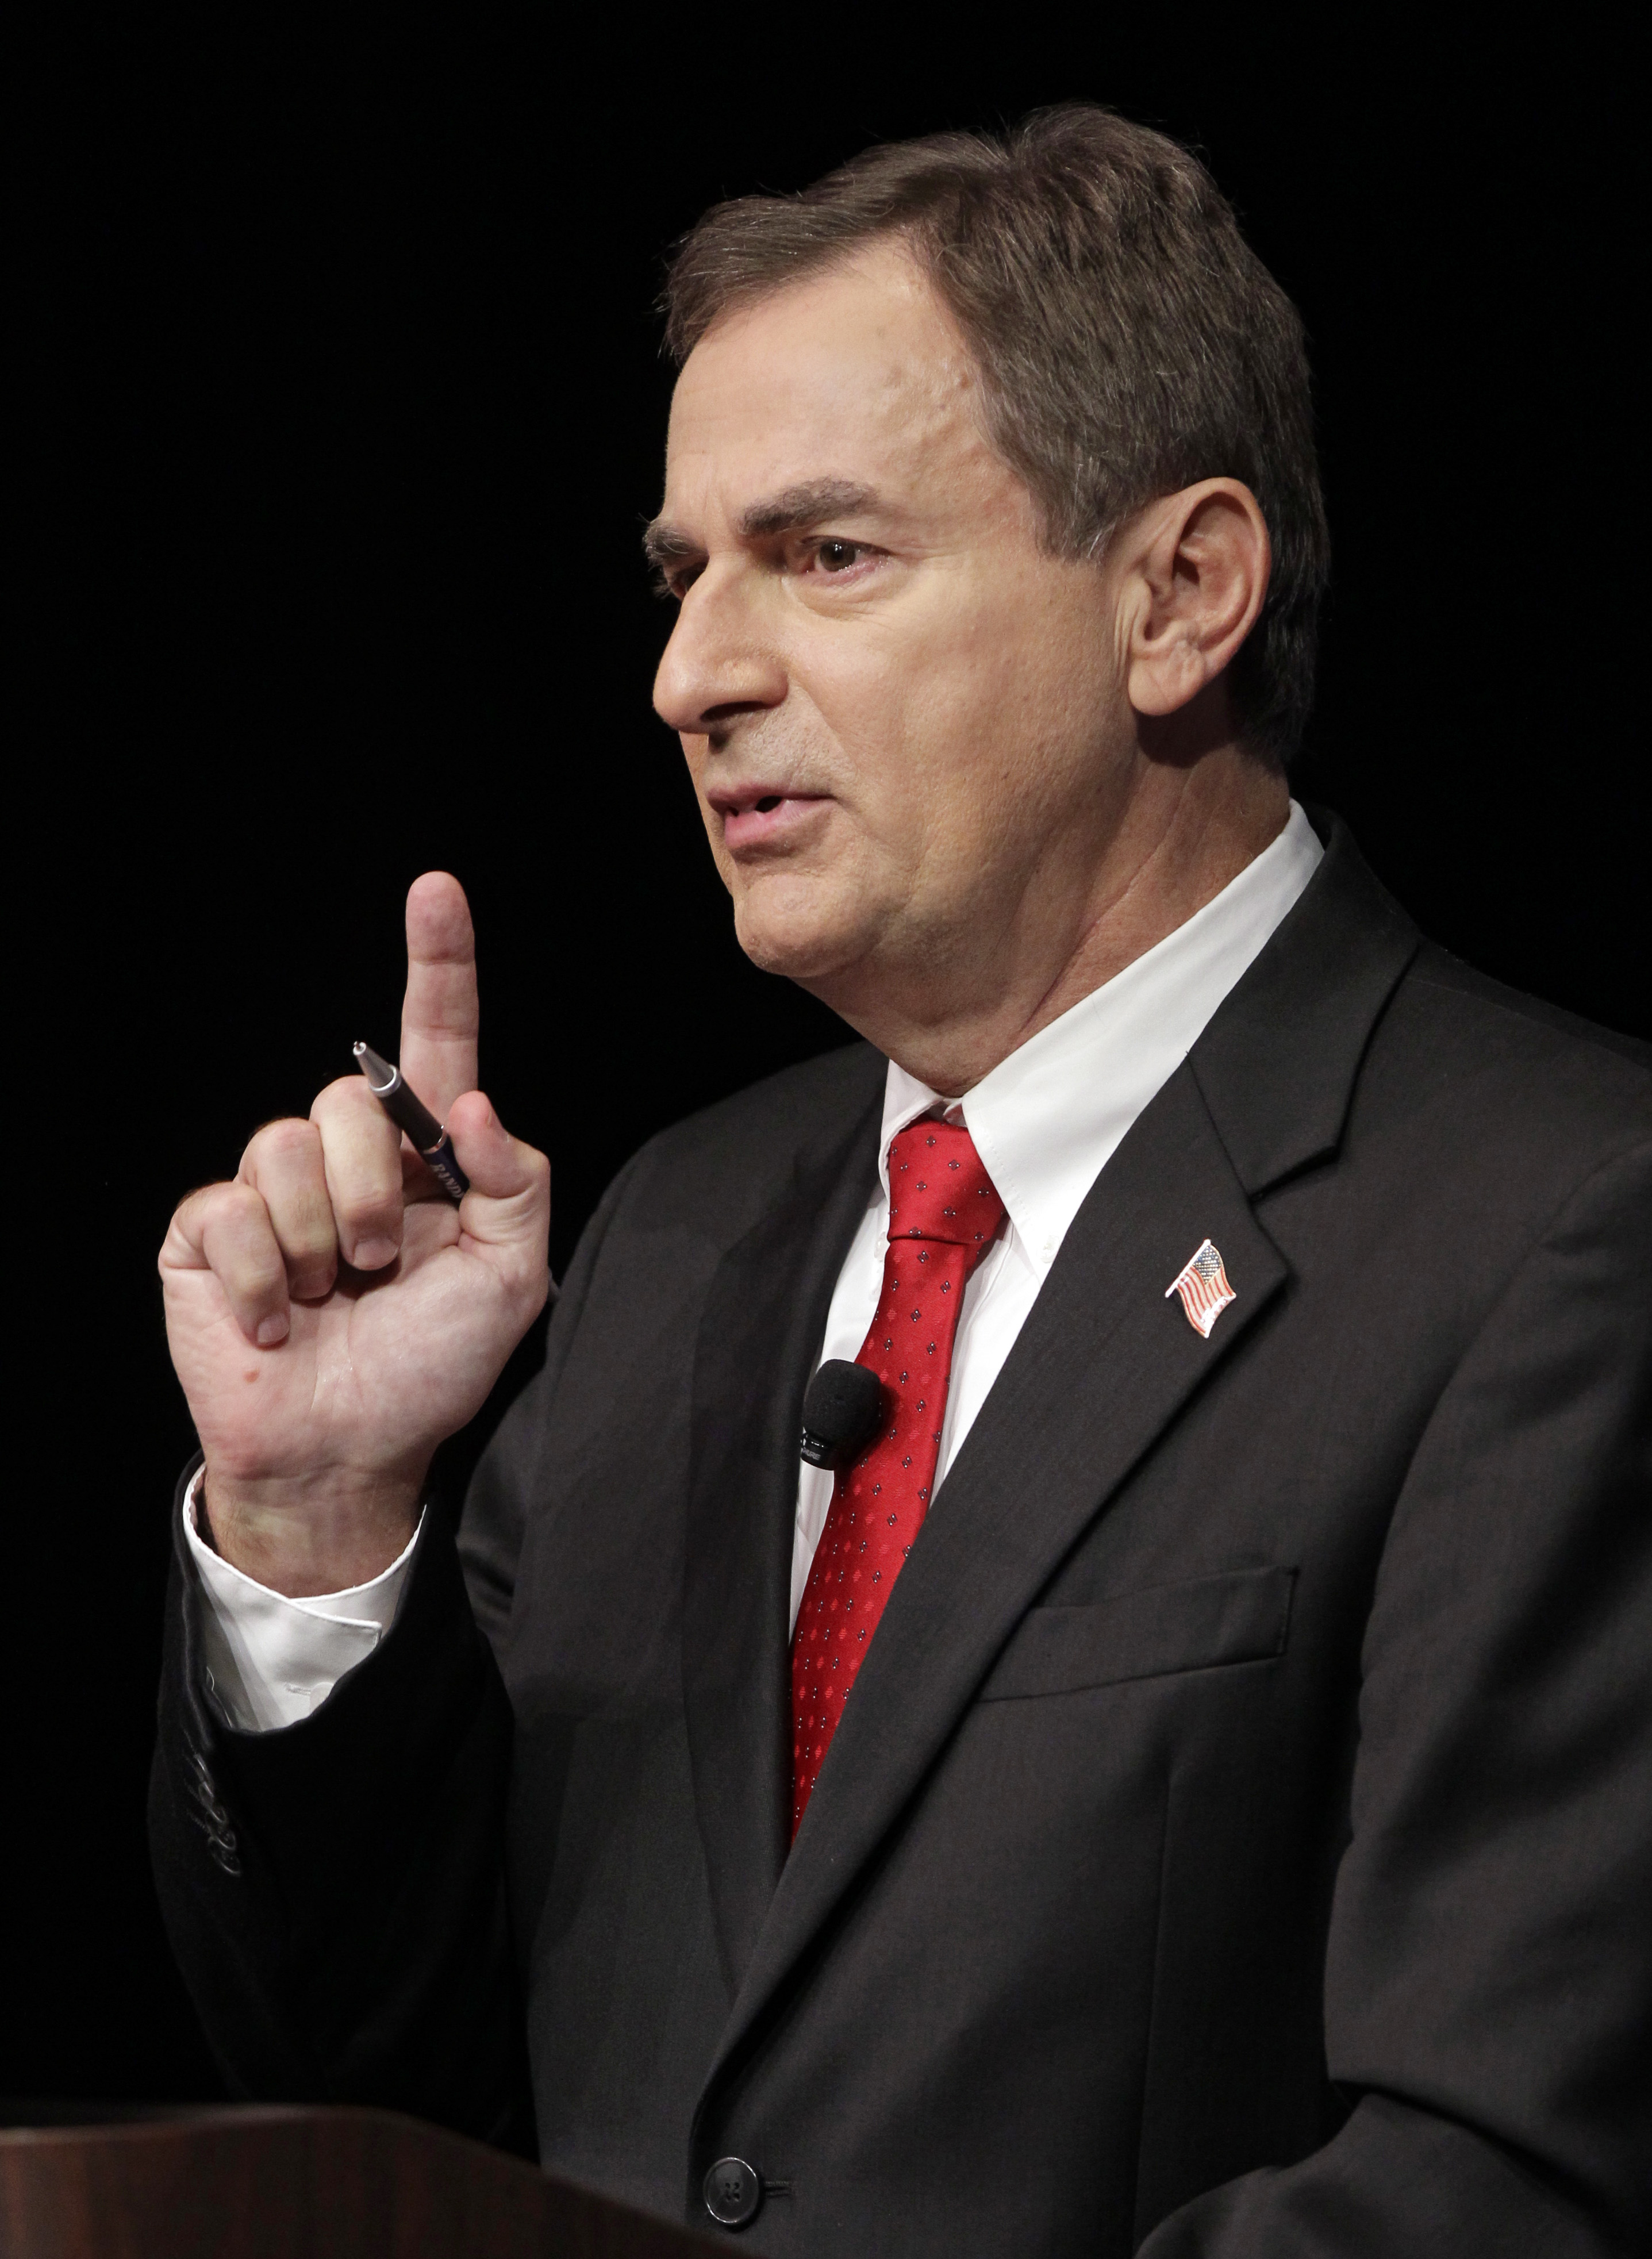 Richard Mourdock, GOP candidate for Indiana's U.S. Senate seat, in a debate with Democrat Joe Donnelly and Libertarian Andrew Horning (Michael Conroy/AP)